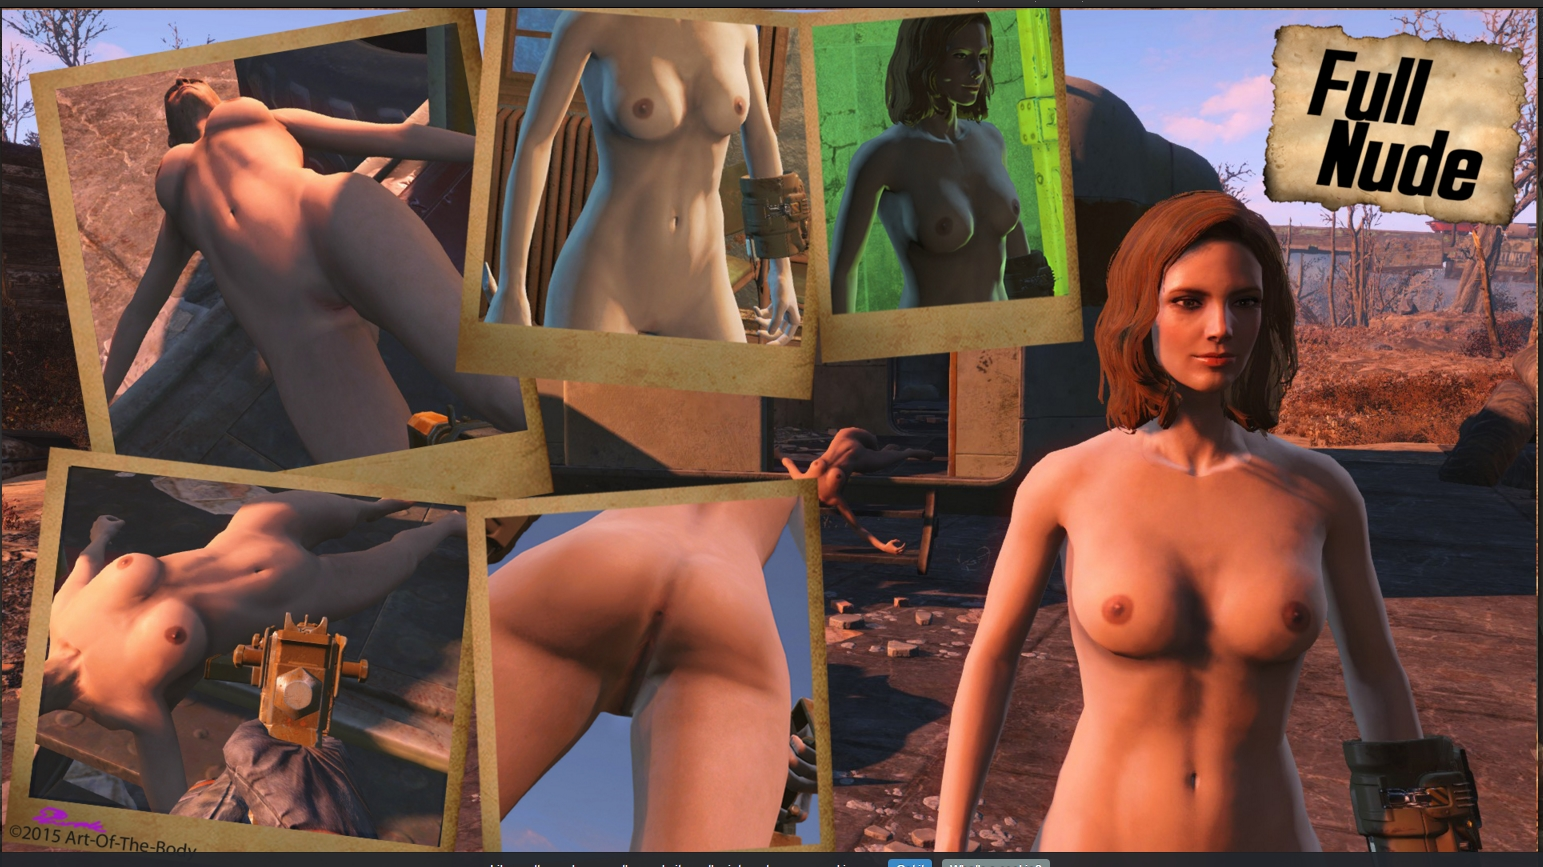 Naked far cry mods naked pics